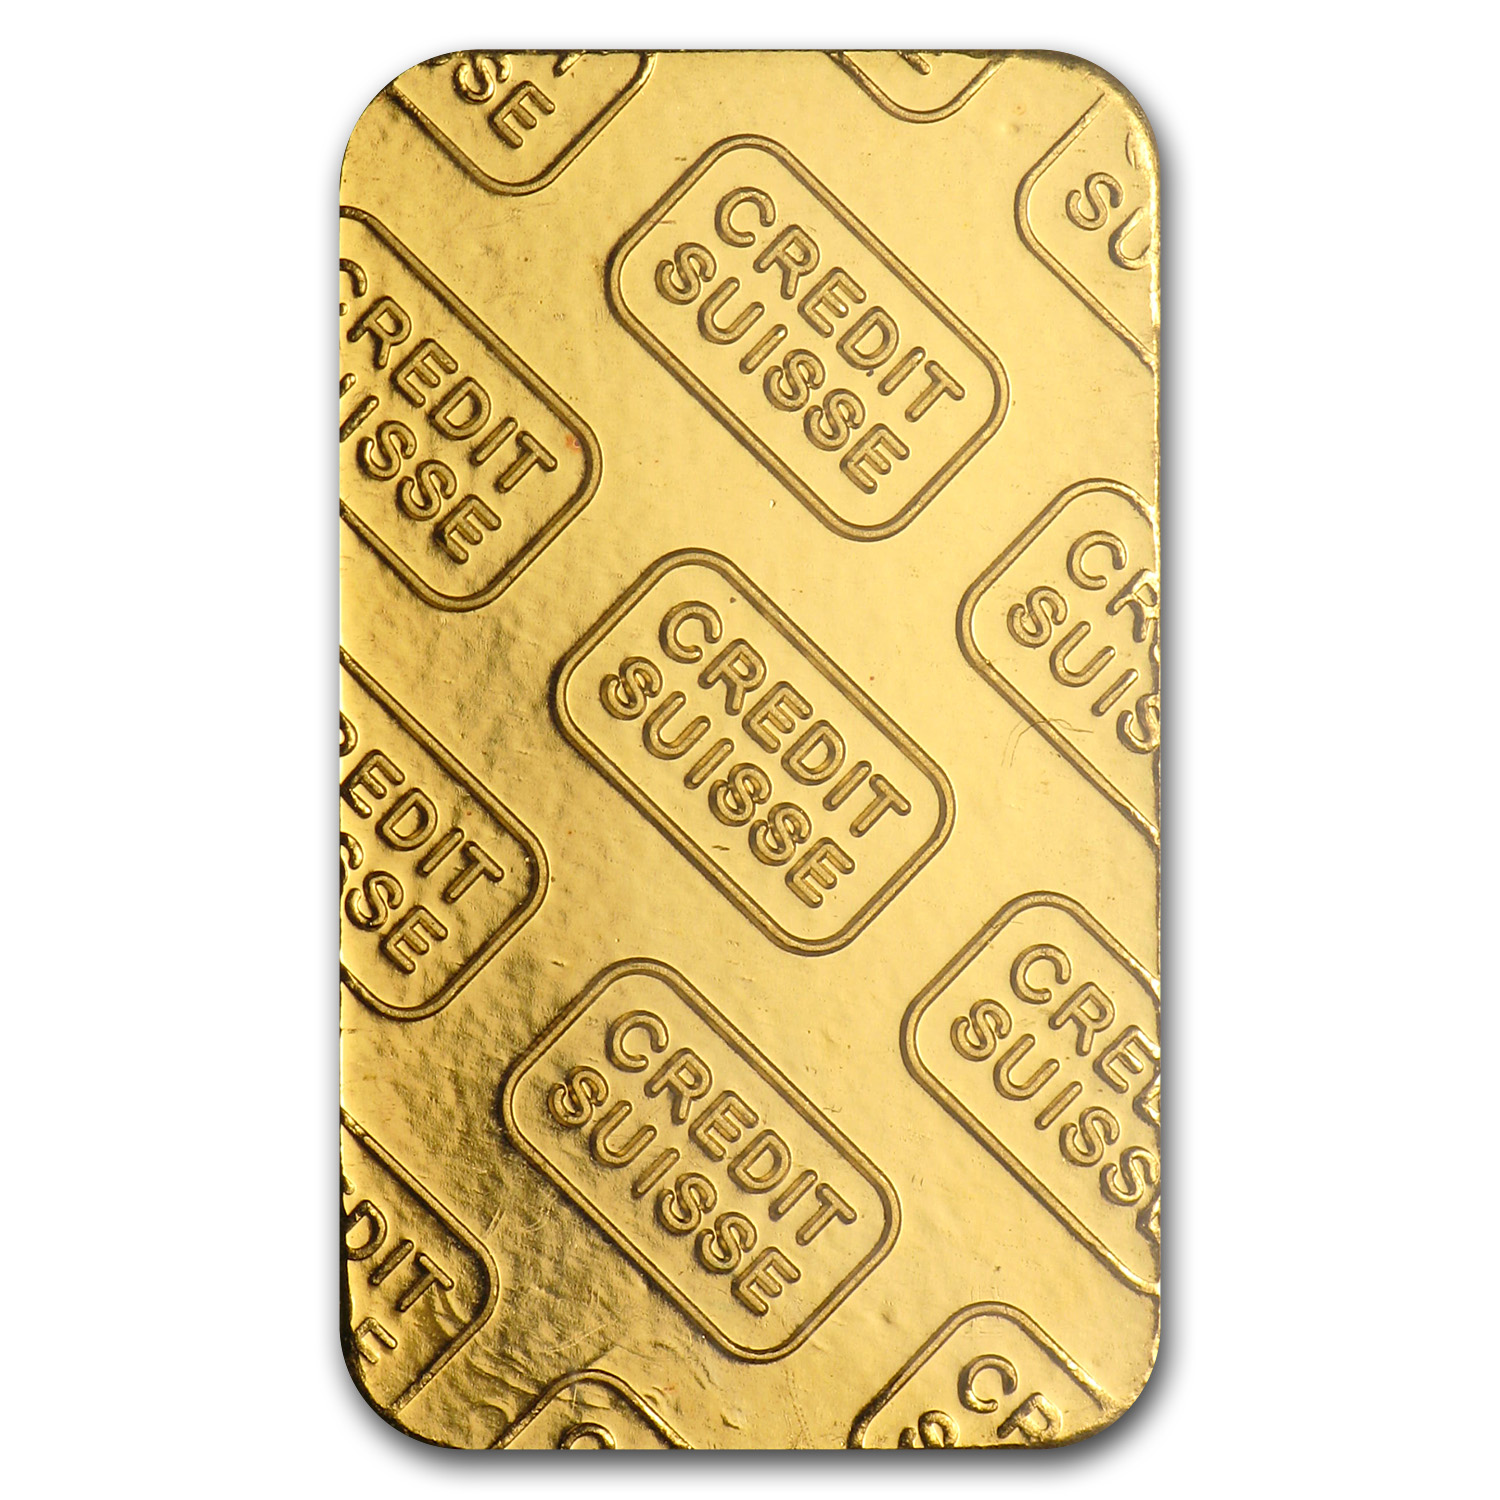 5 gram Gold Bar - Credit Suisse (Vintage Design)